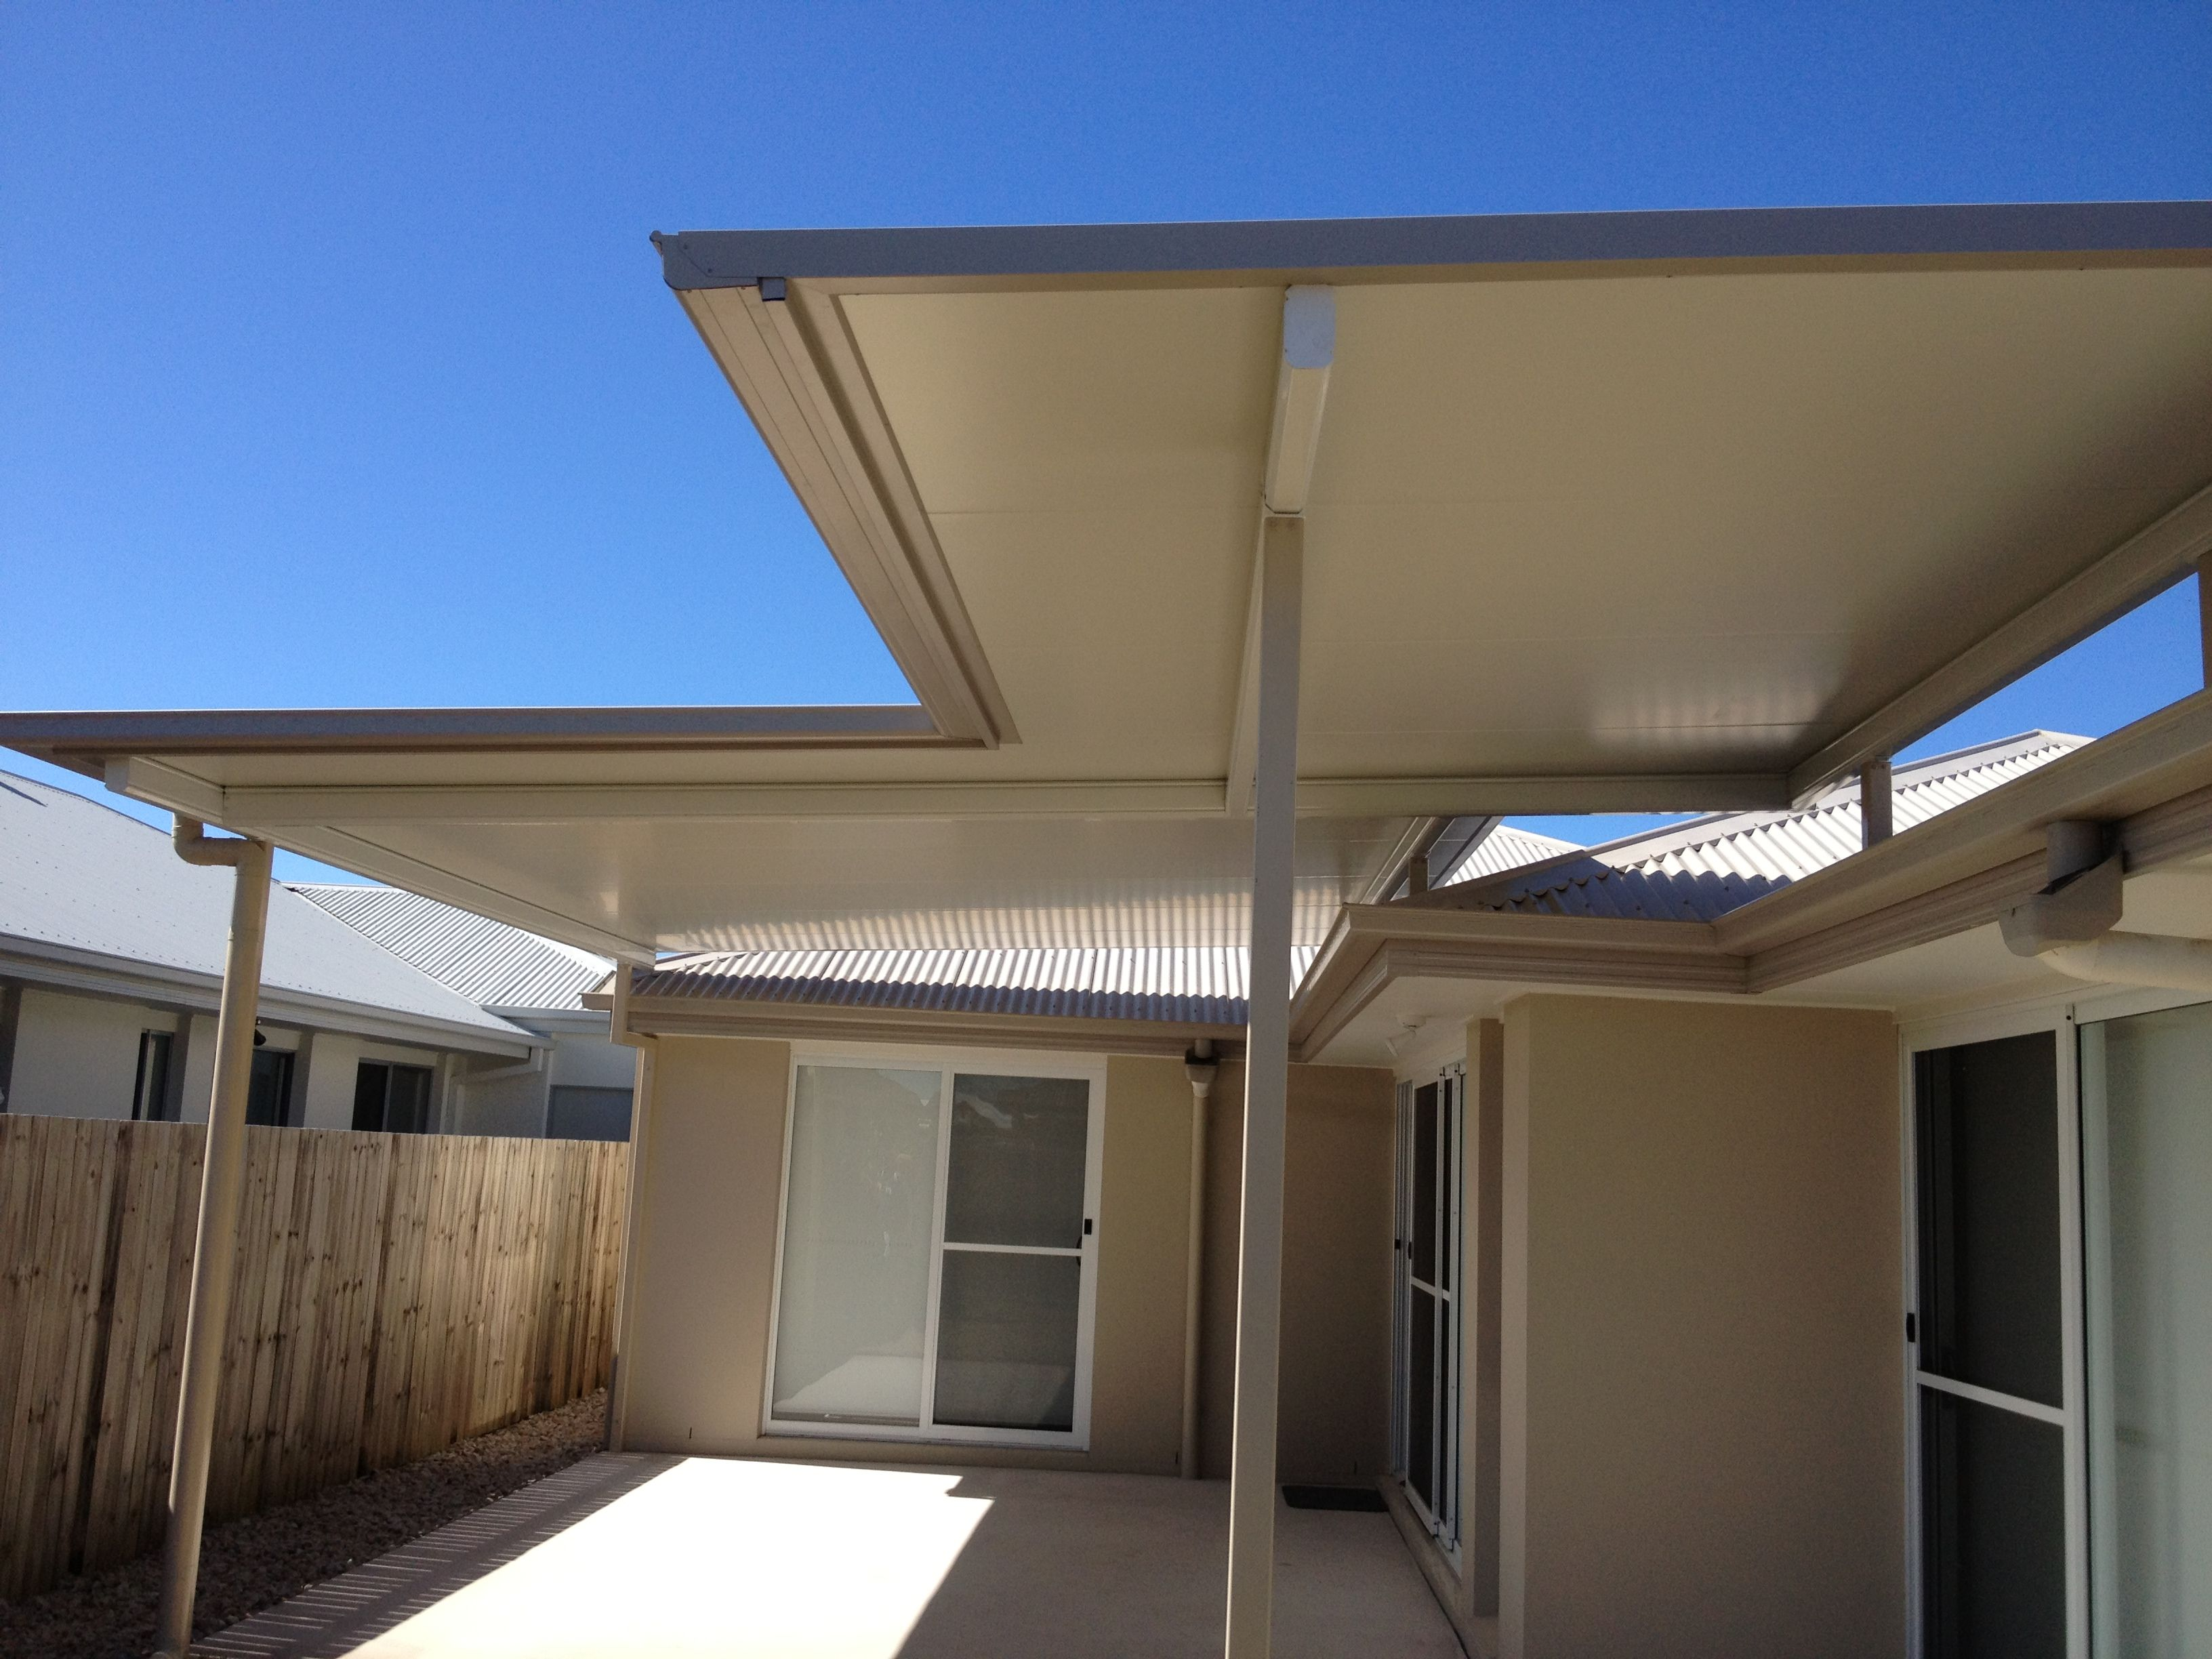 Stratco Cooldek Fly Over Patio That Was Built To Provide Cover For An Outdoor Area And To Prevent Glare Into The H Pergola Plans Design Carport Designs Pergola